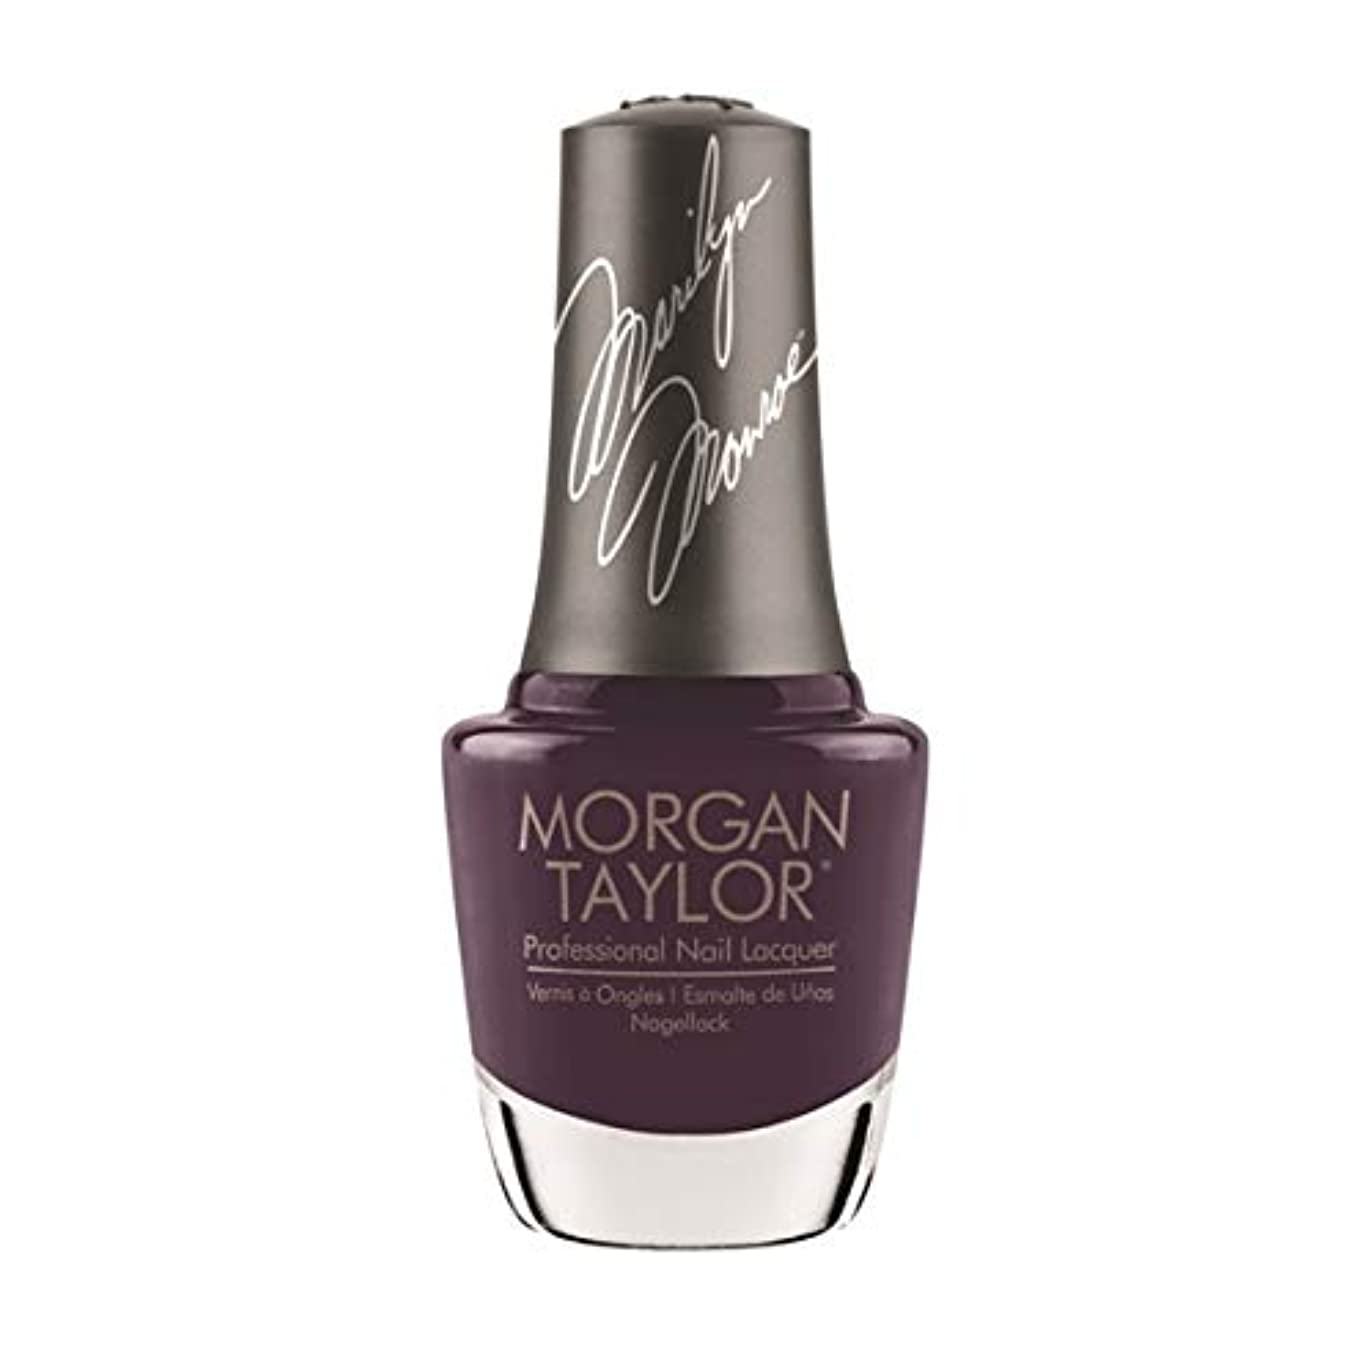 光沢のある敬意を表するかろうじてMorgan Taylor Nail Lacquer - Forever Marilyn Fall 2019 Collection - A Girl And Her Curls - 15ml / 0.5oz